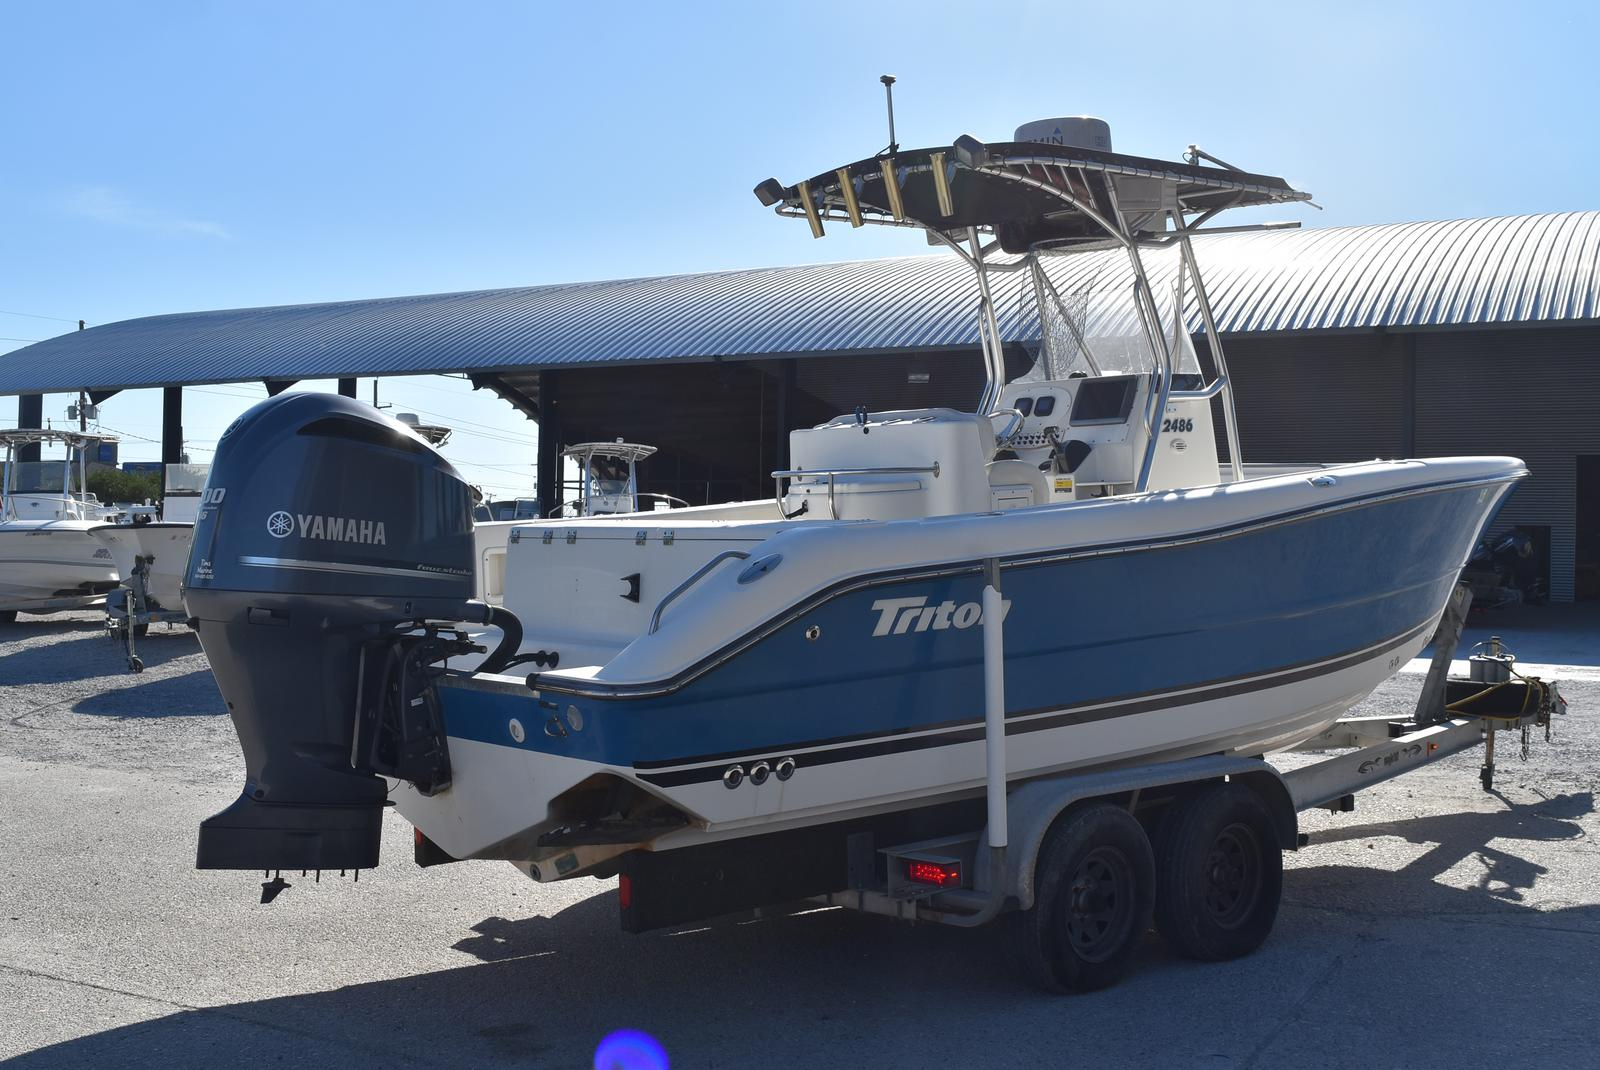 2006 Triton boat for sale, model of the boat is 2486 & Image # 3 of 24